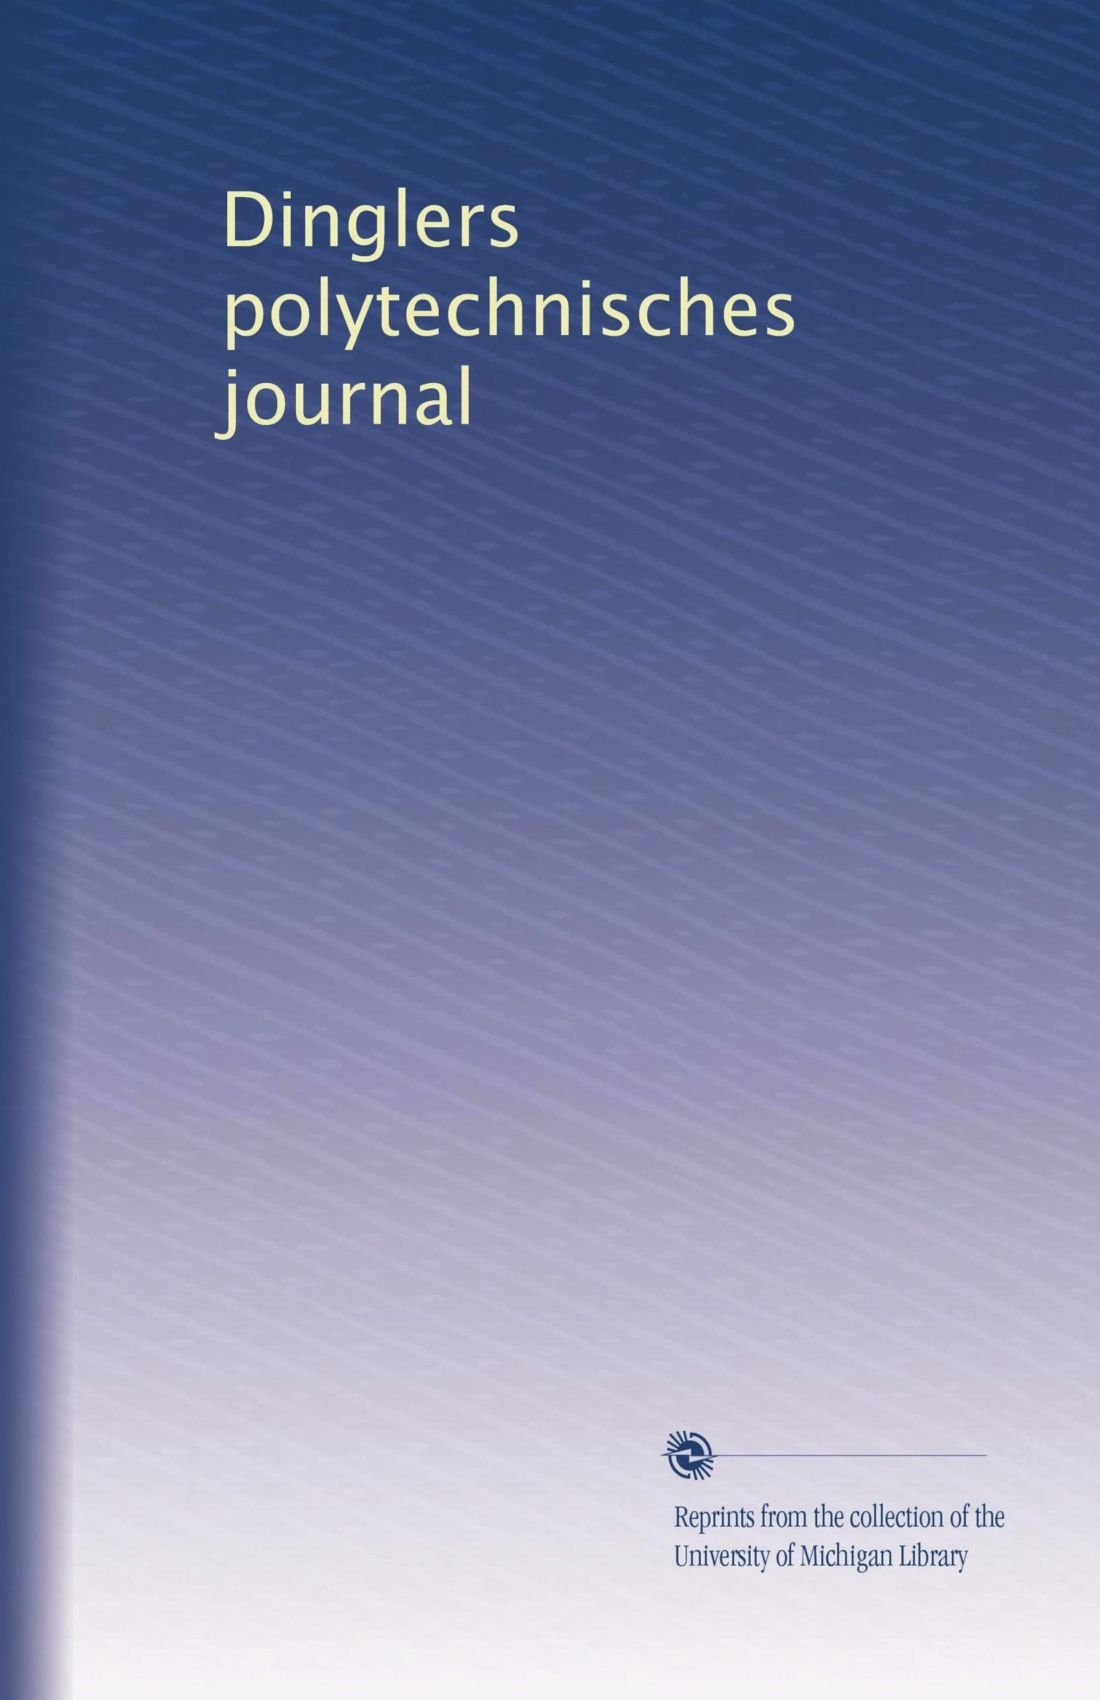 Dinglers polytechnisches journal (Volume 7) (German Edition) pdf epub